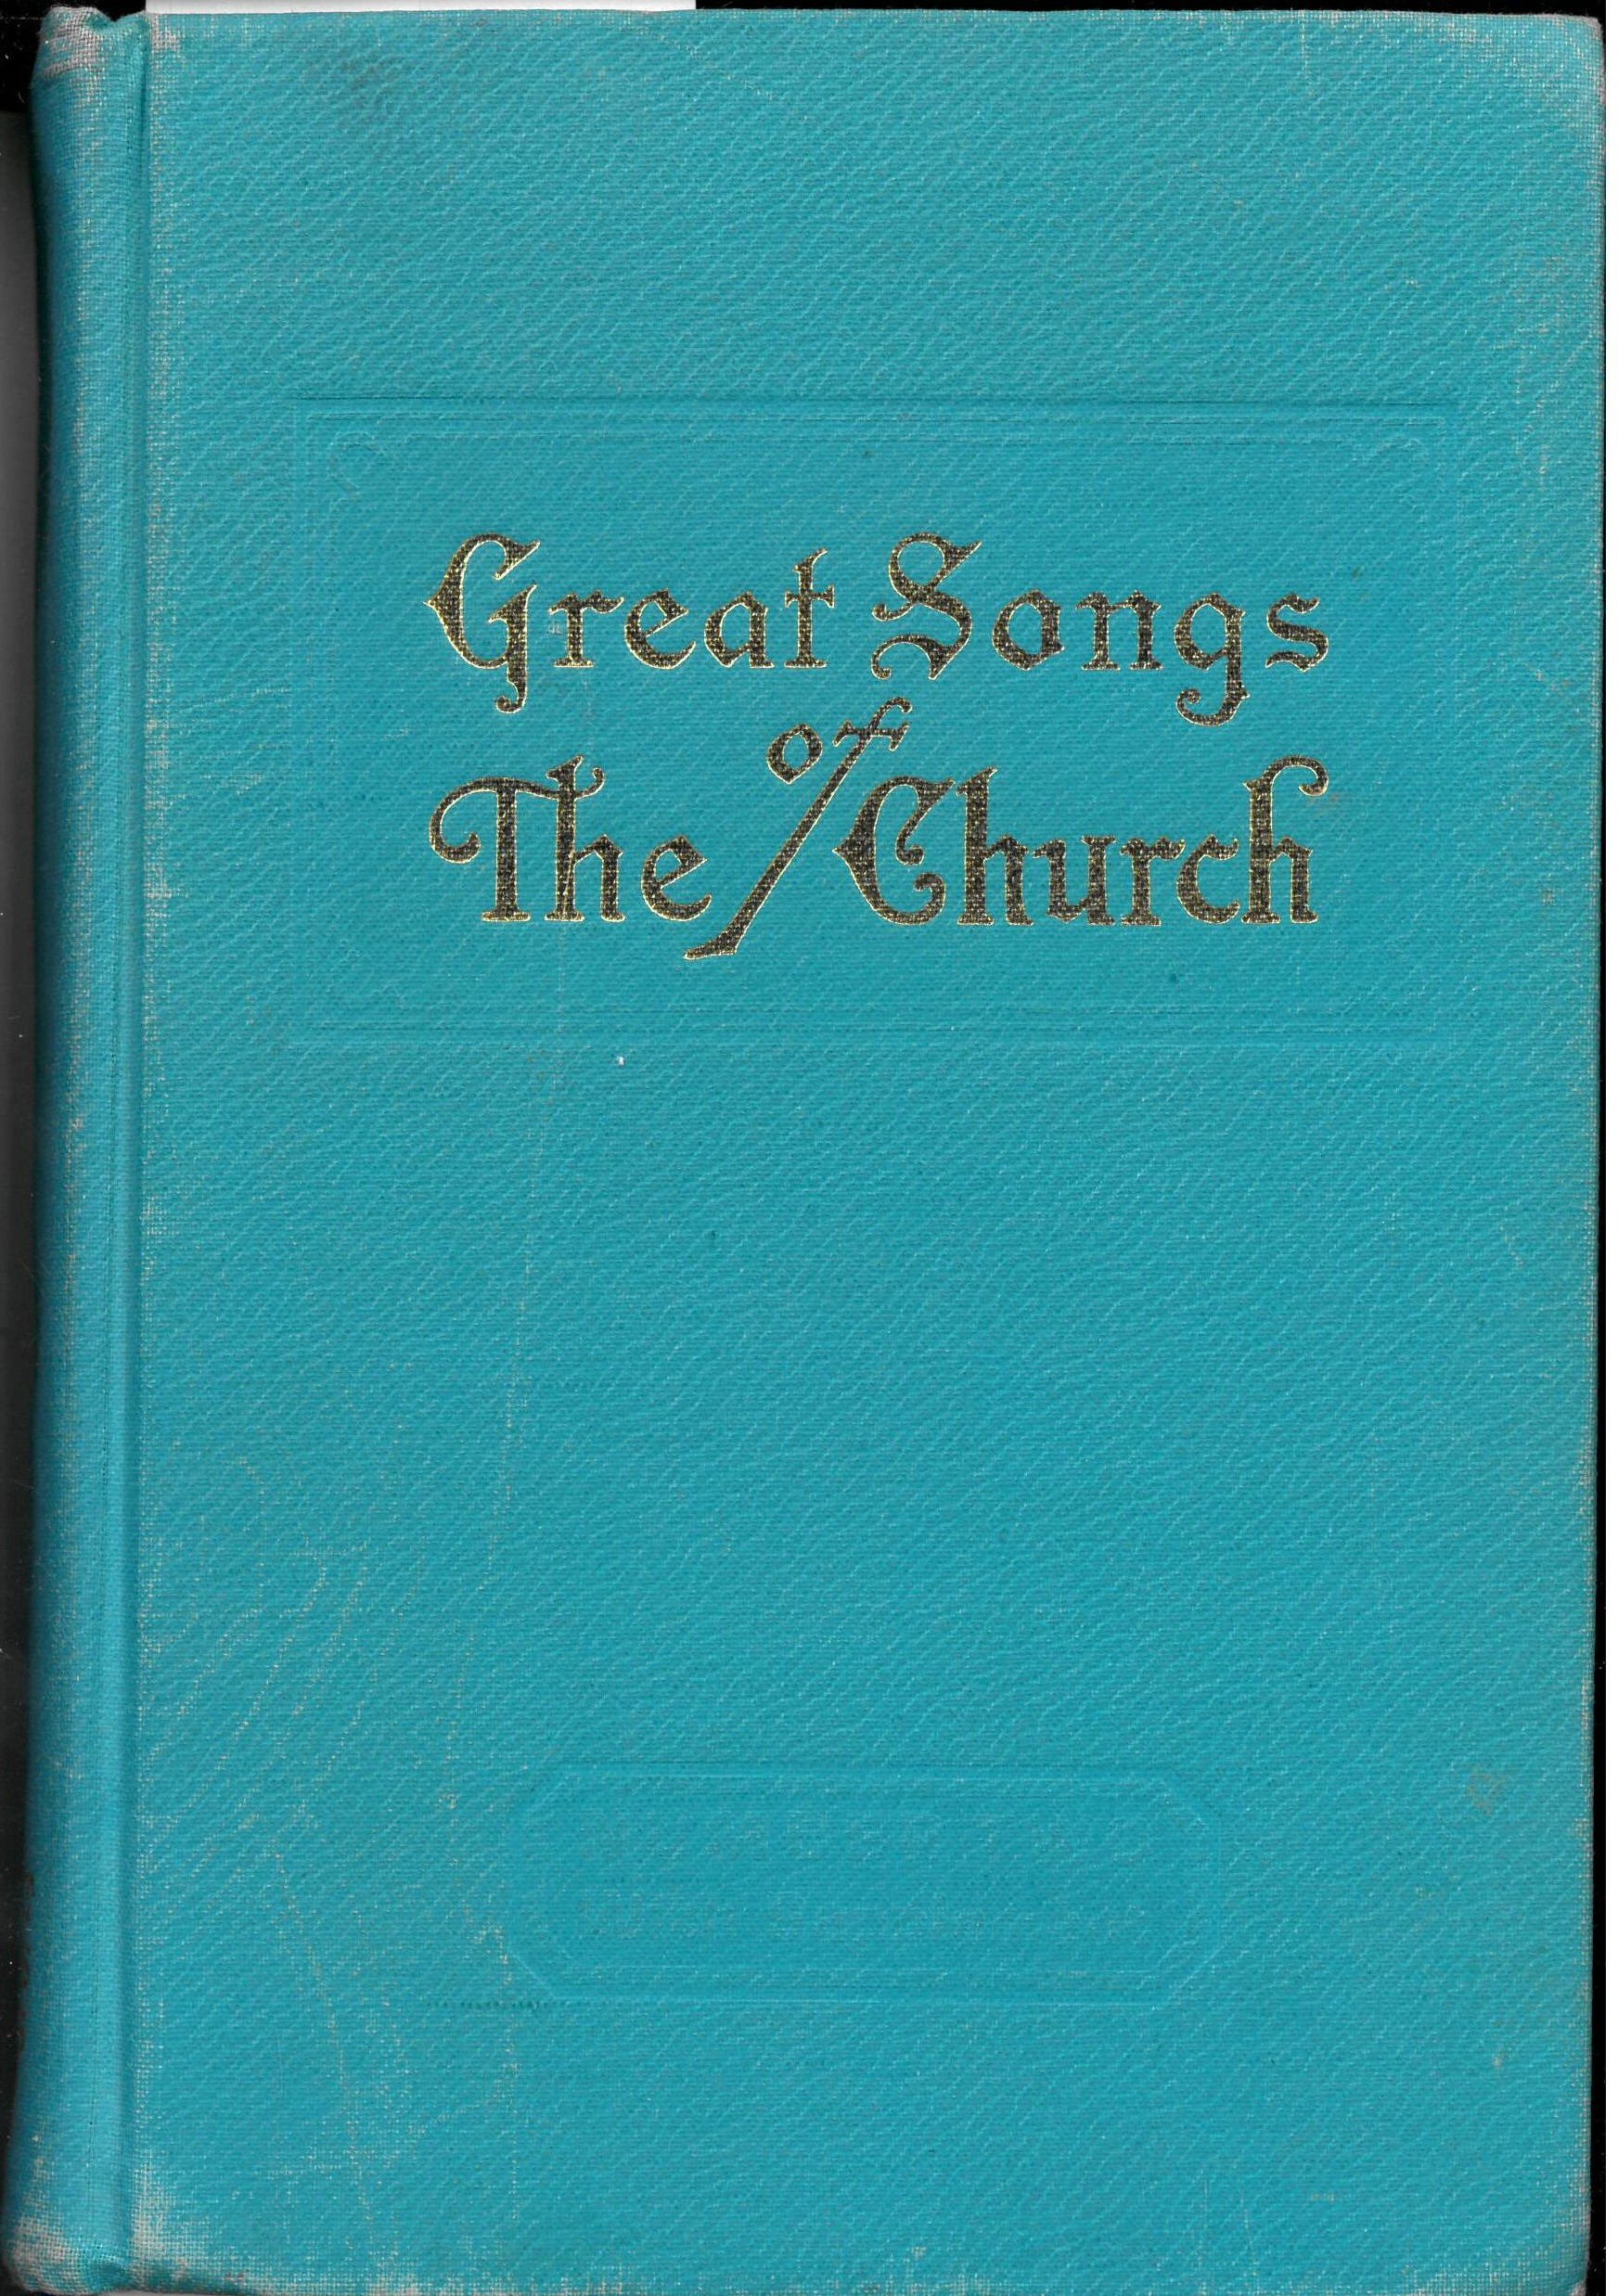 The New Alphabetical Hymnal. Great Songs of the Church Number Two. A Treasury of Six Hundred Sacred Songs Suitable for All Services of the Church. E. L. Jorgenson, Compiler. Great Songs Press: Hammond, Louisiana, 1976. Front cover.